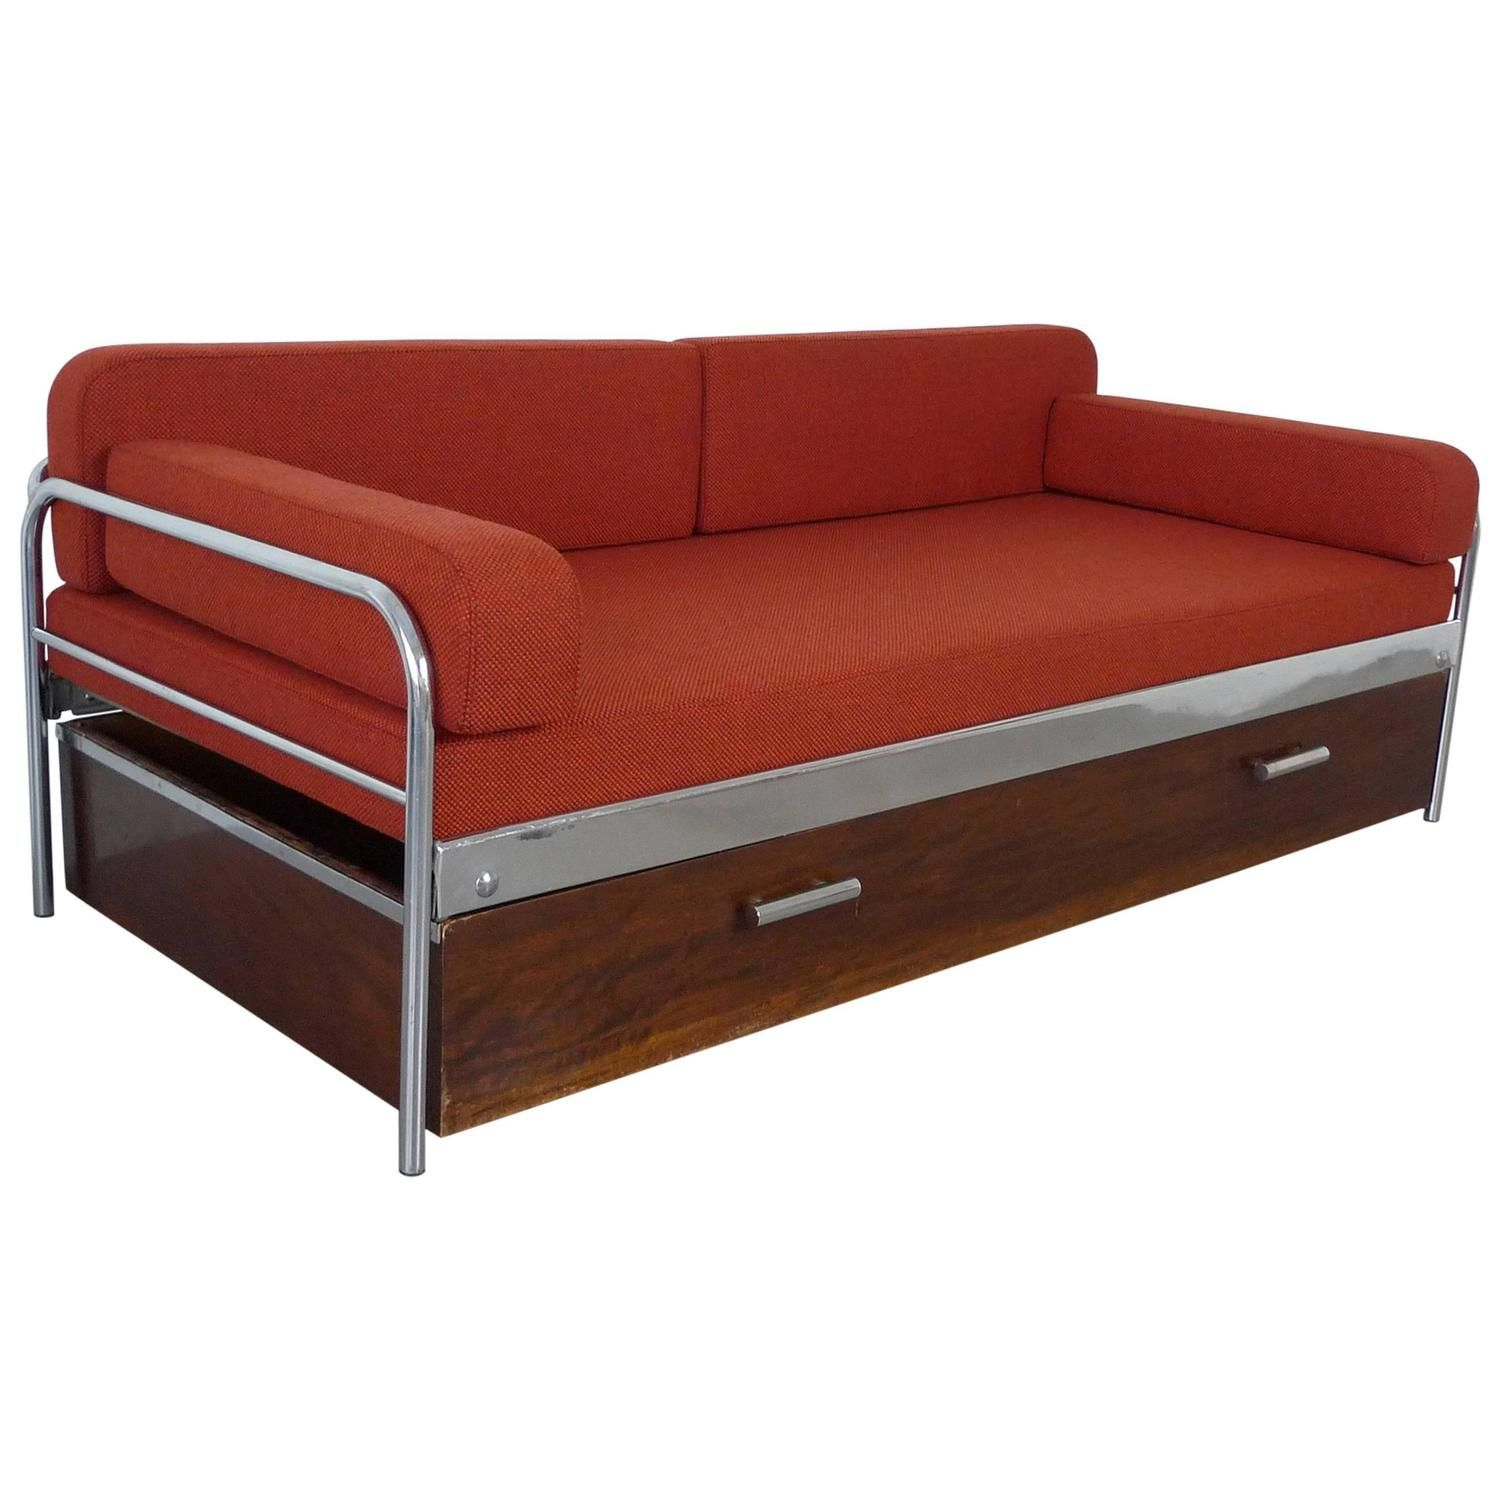 1930s Steel Tube Sofa Bed By Mucke Melder Czechoslovakia 1stdibs Com Furniture Vintage Sofa Sofa